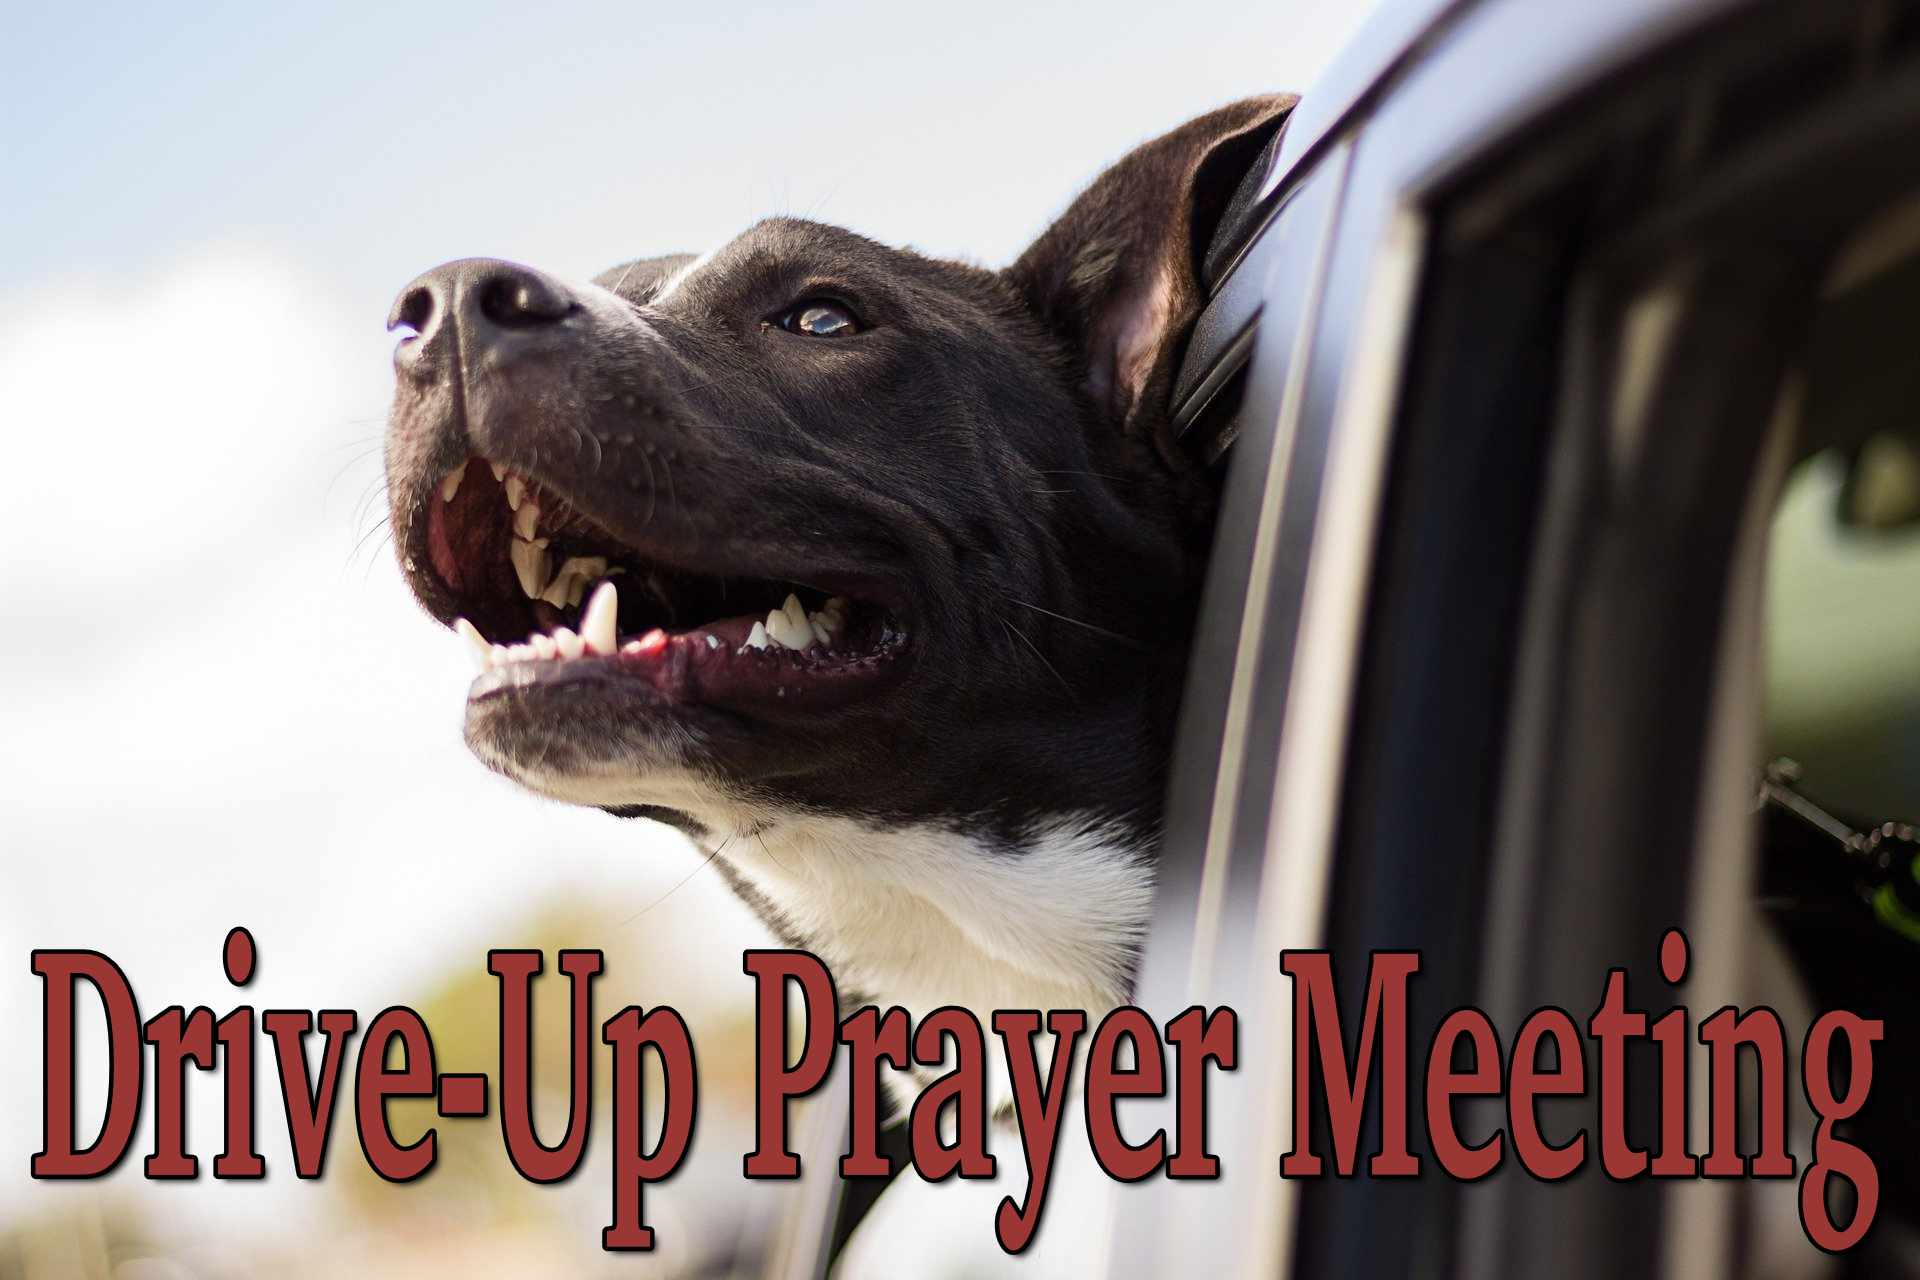 drive-up prayer meeting